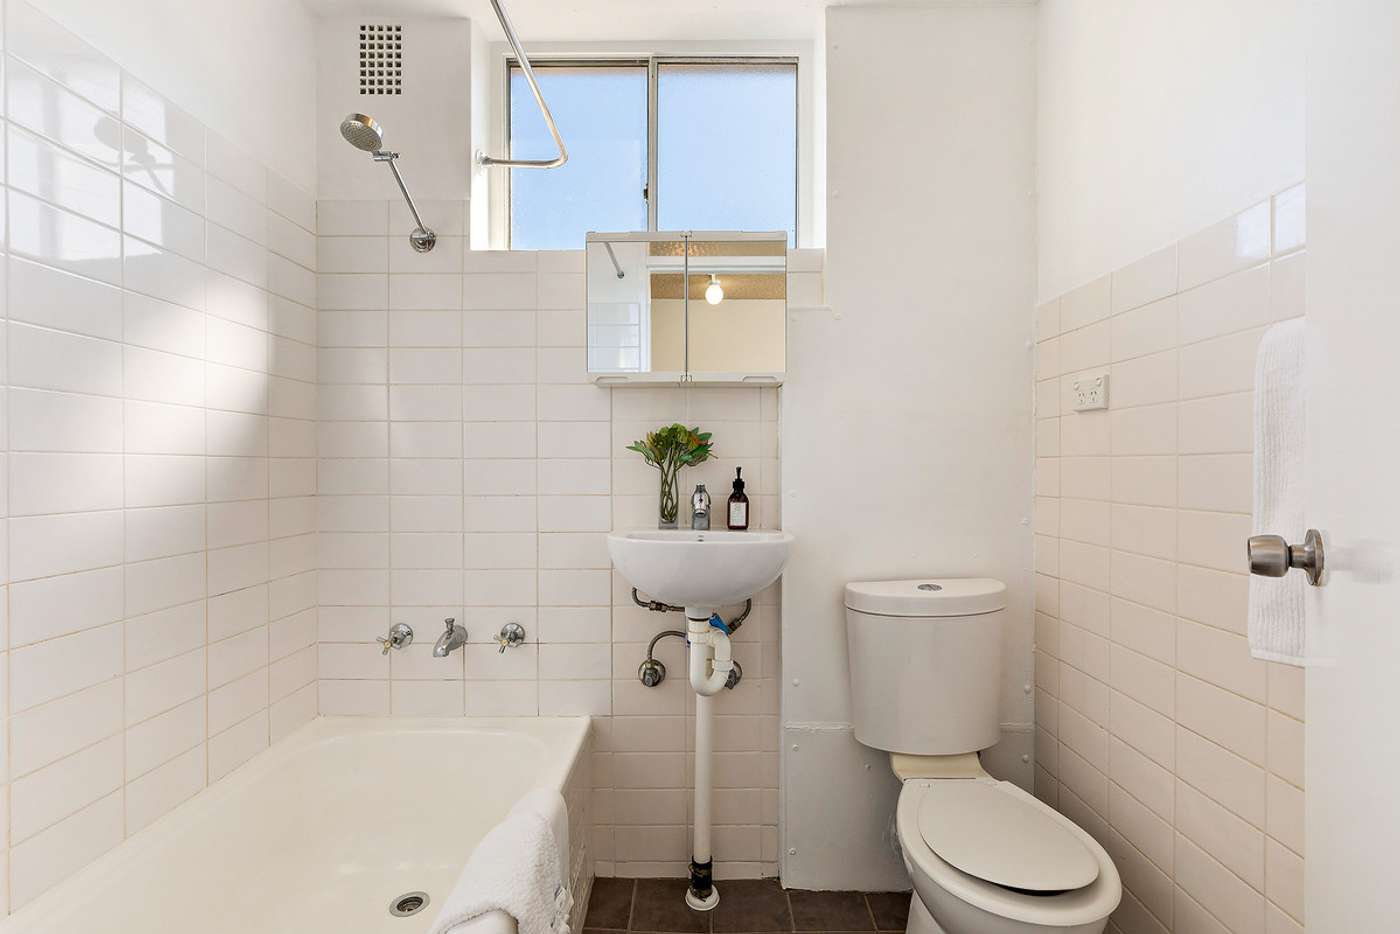 Fifth view of Homely apartment listing, 510/5 Ward Avenue, Potts Point NSW 2011